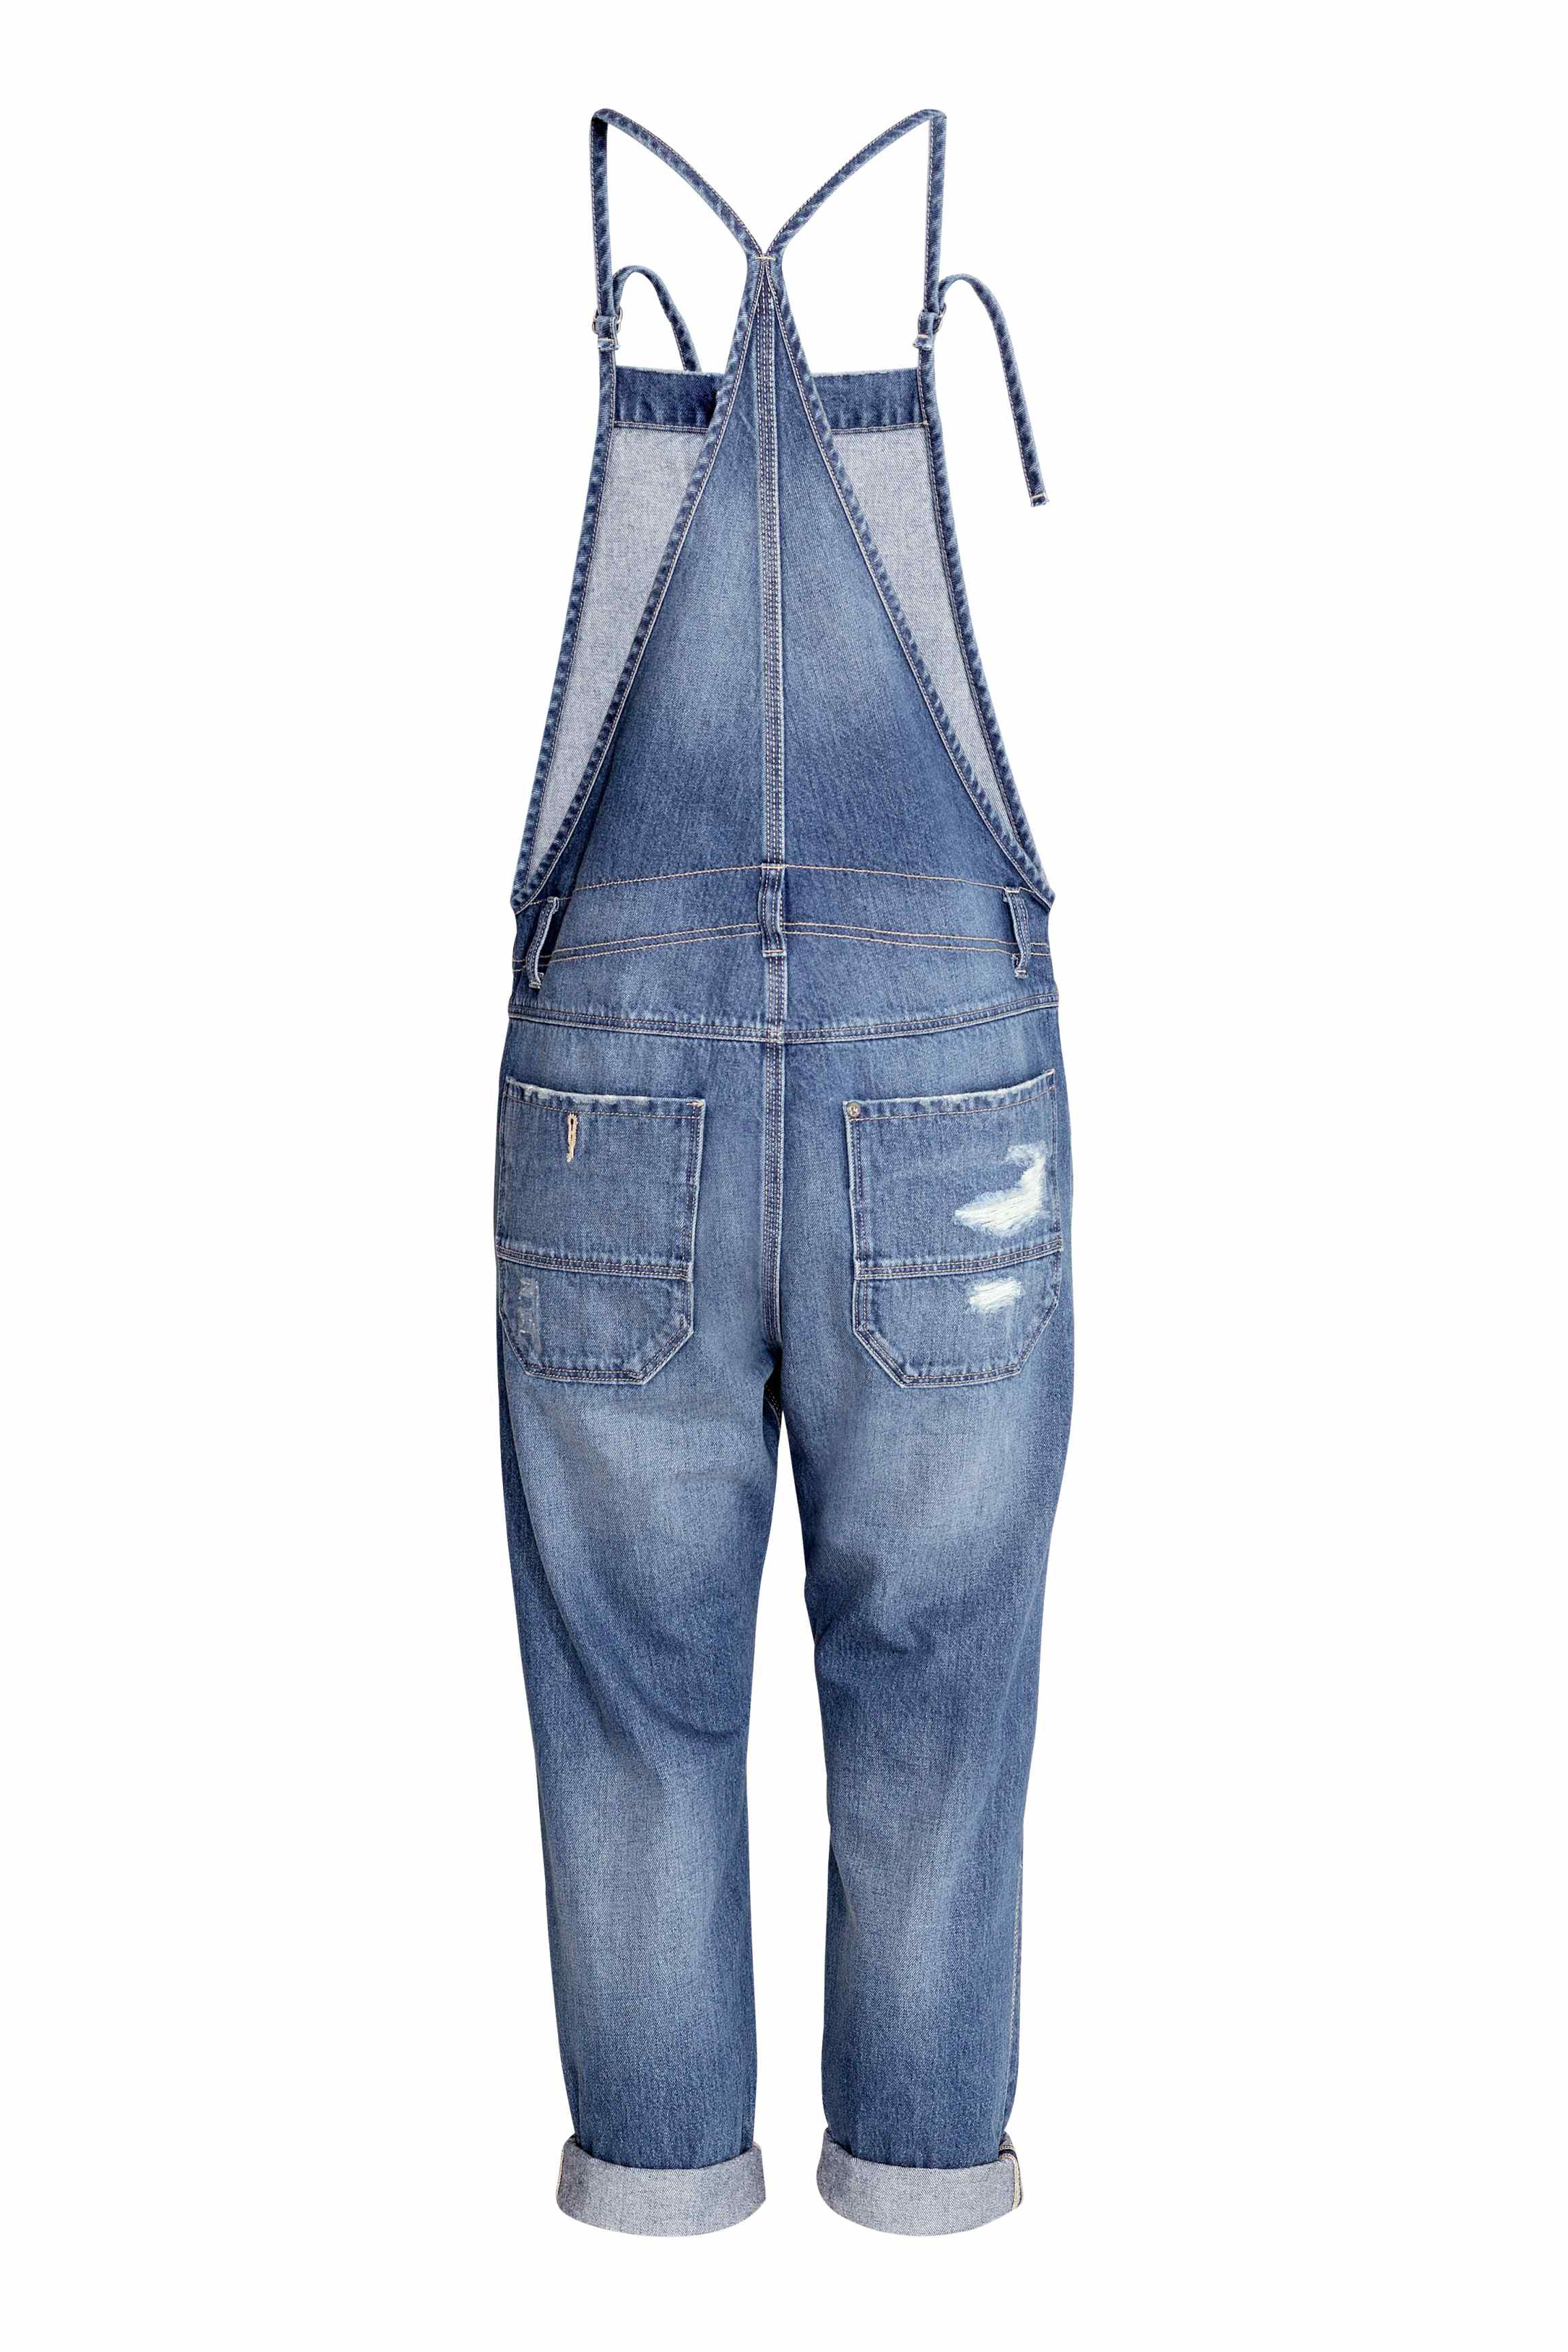 River Island Dungarees Hm